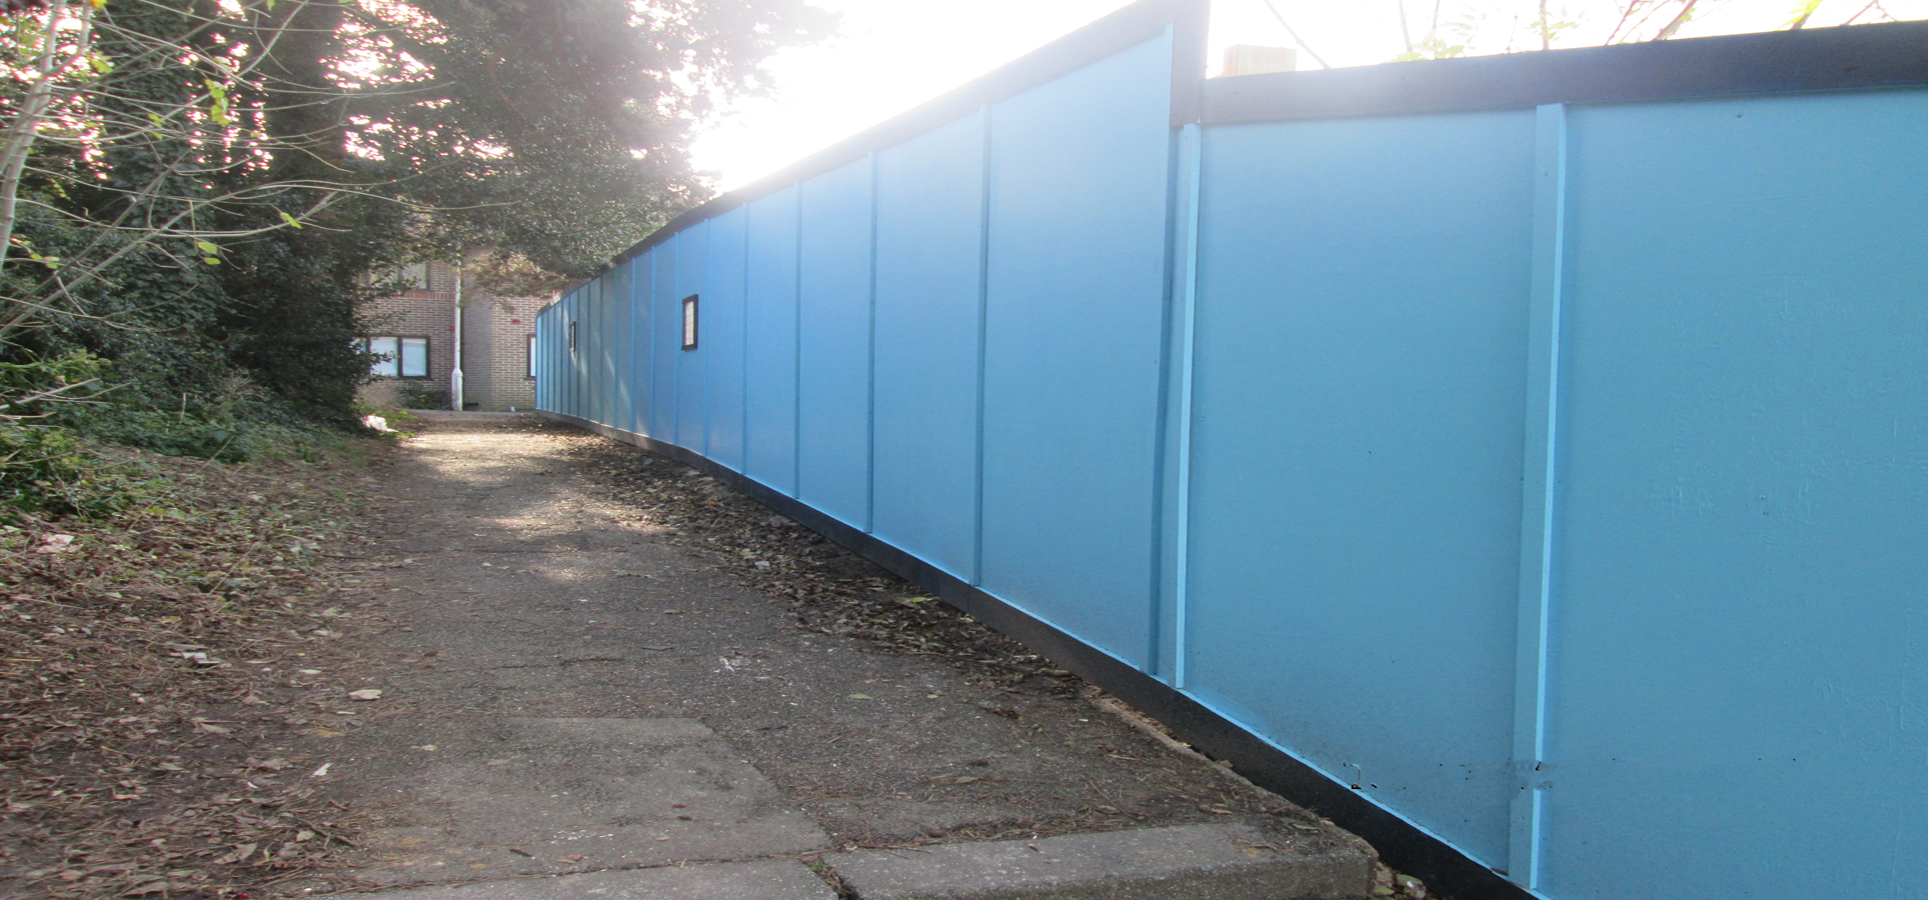 East Grinstead Community Art Project with Jessops Construction, Jessops Construction Ltd